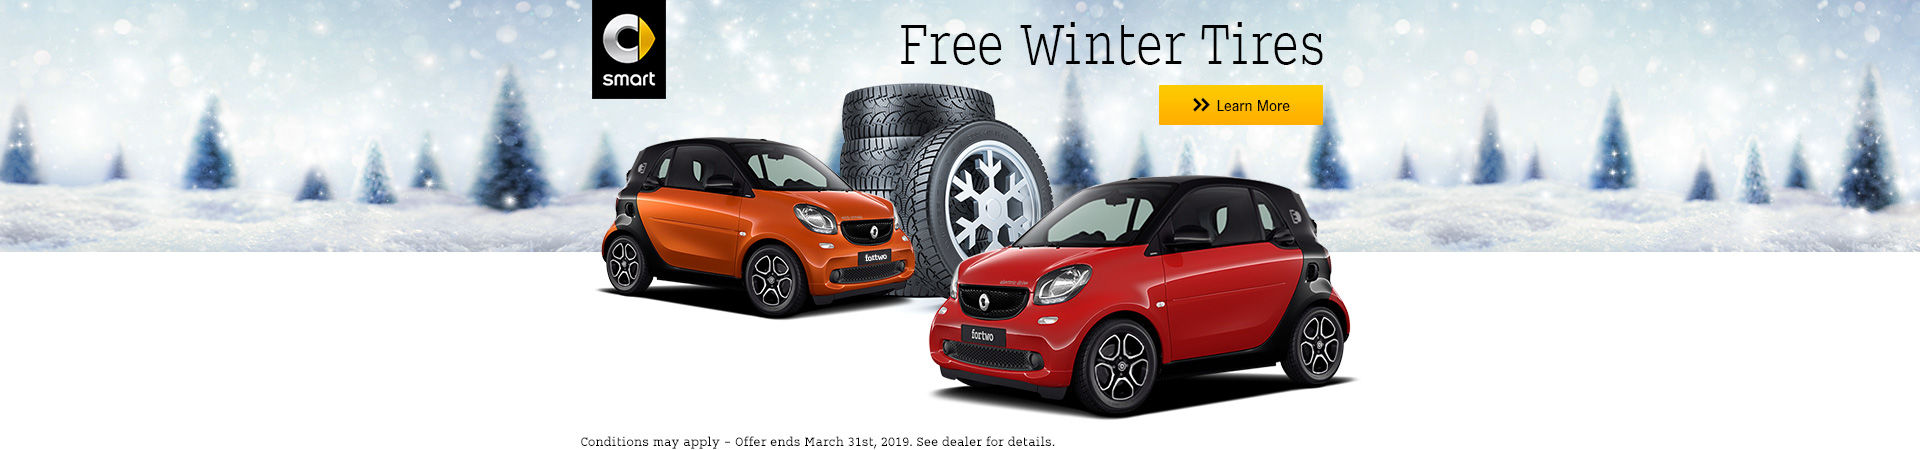 Free winter tires header